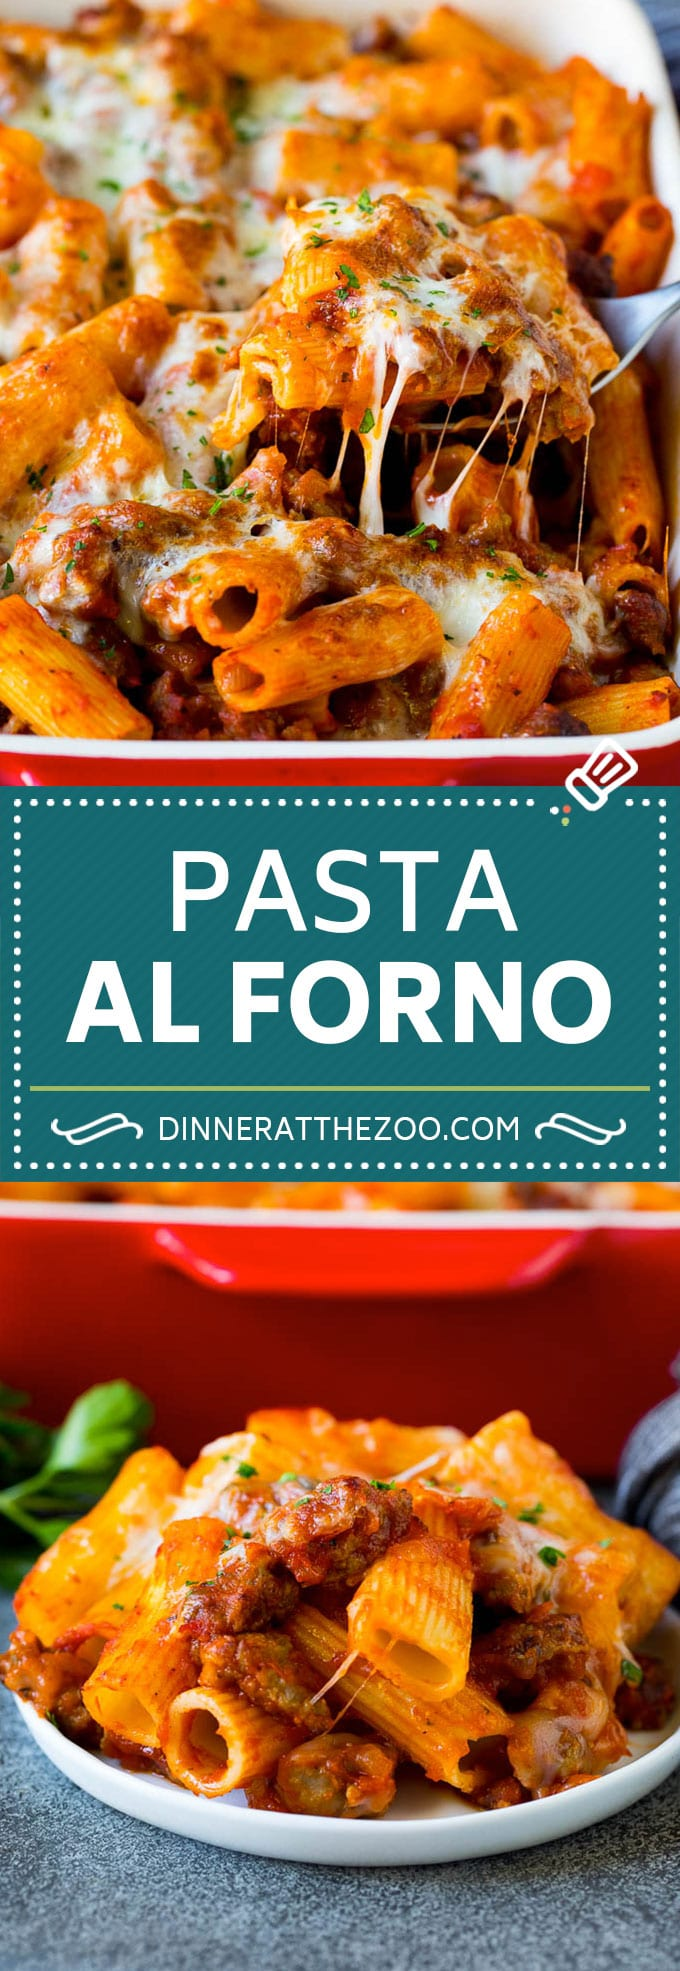 Pasta al Forno is hearty rigatoni noodles tossed in a savory meat sauce then topped with cheese and baked. #pasta #dinneratthezoo